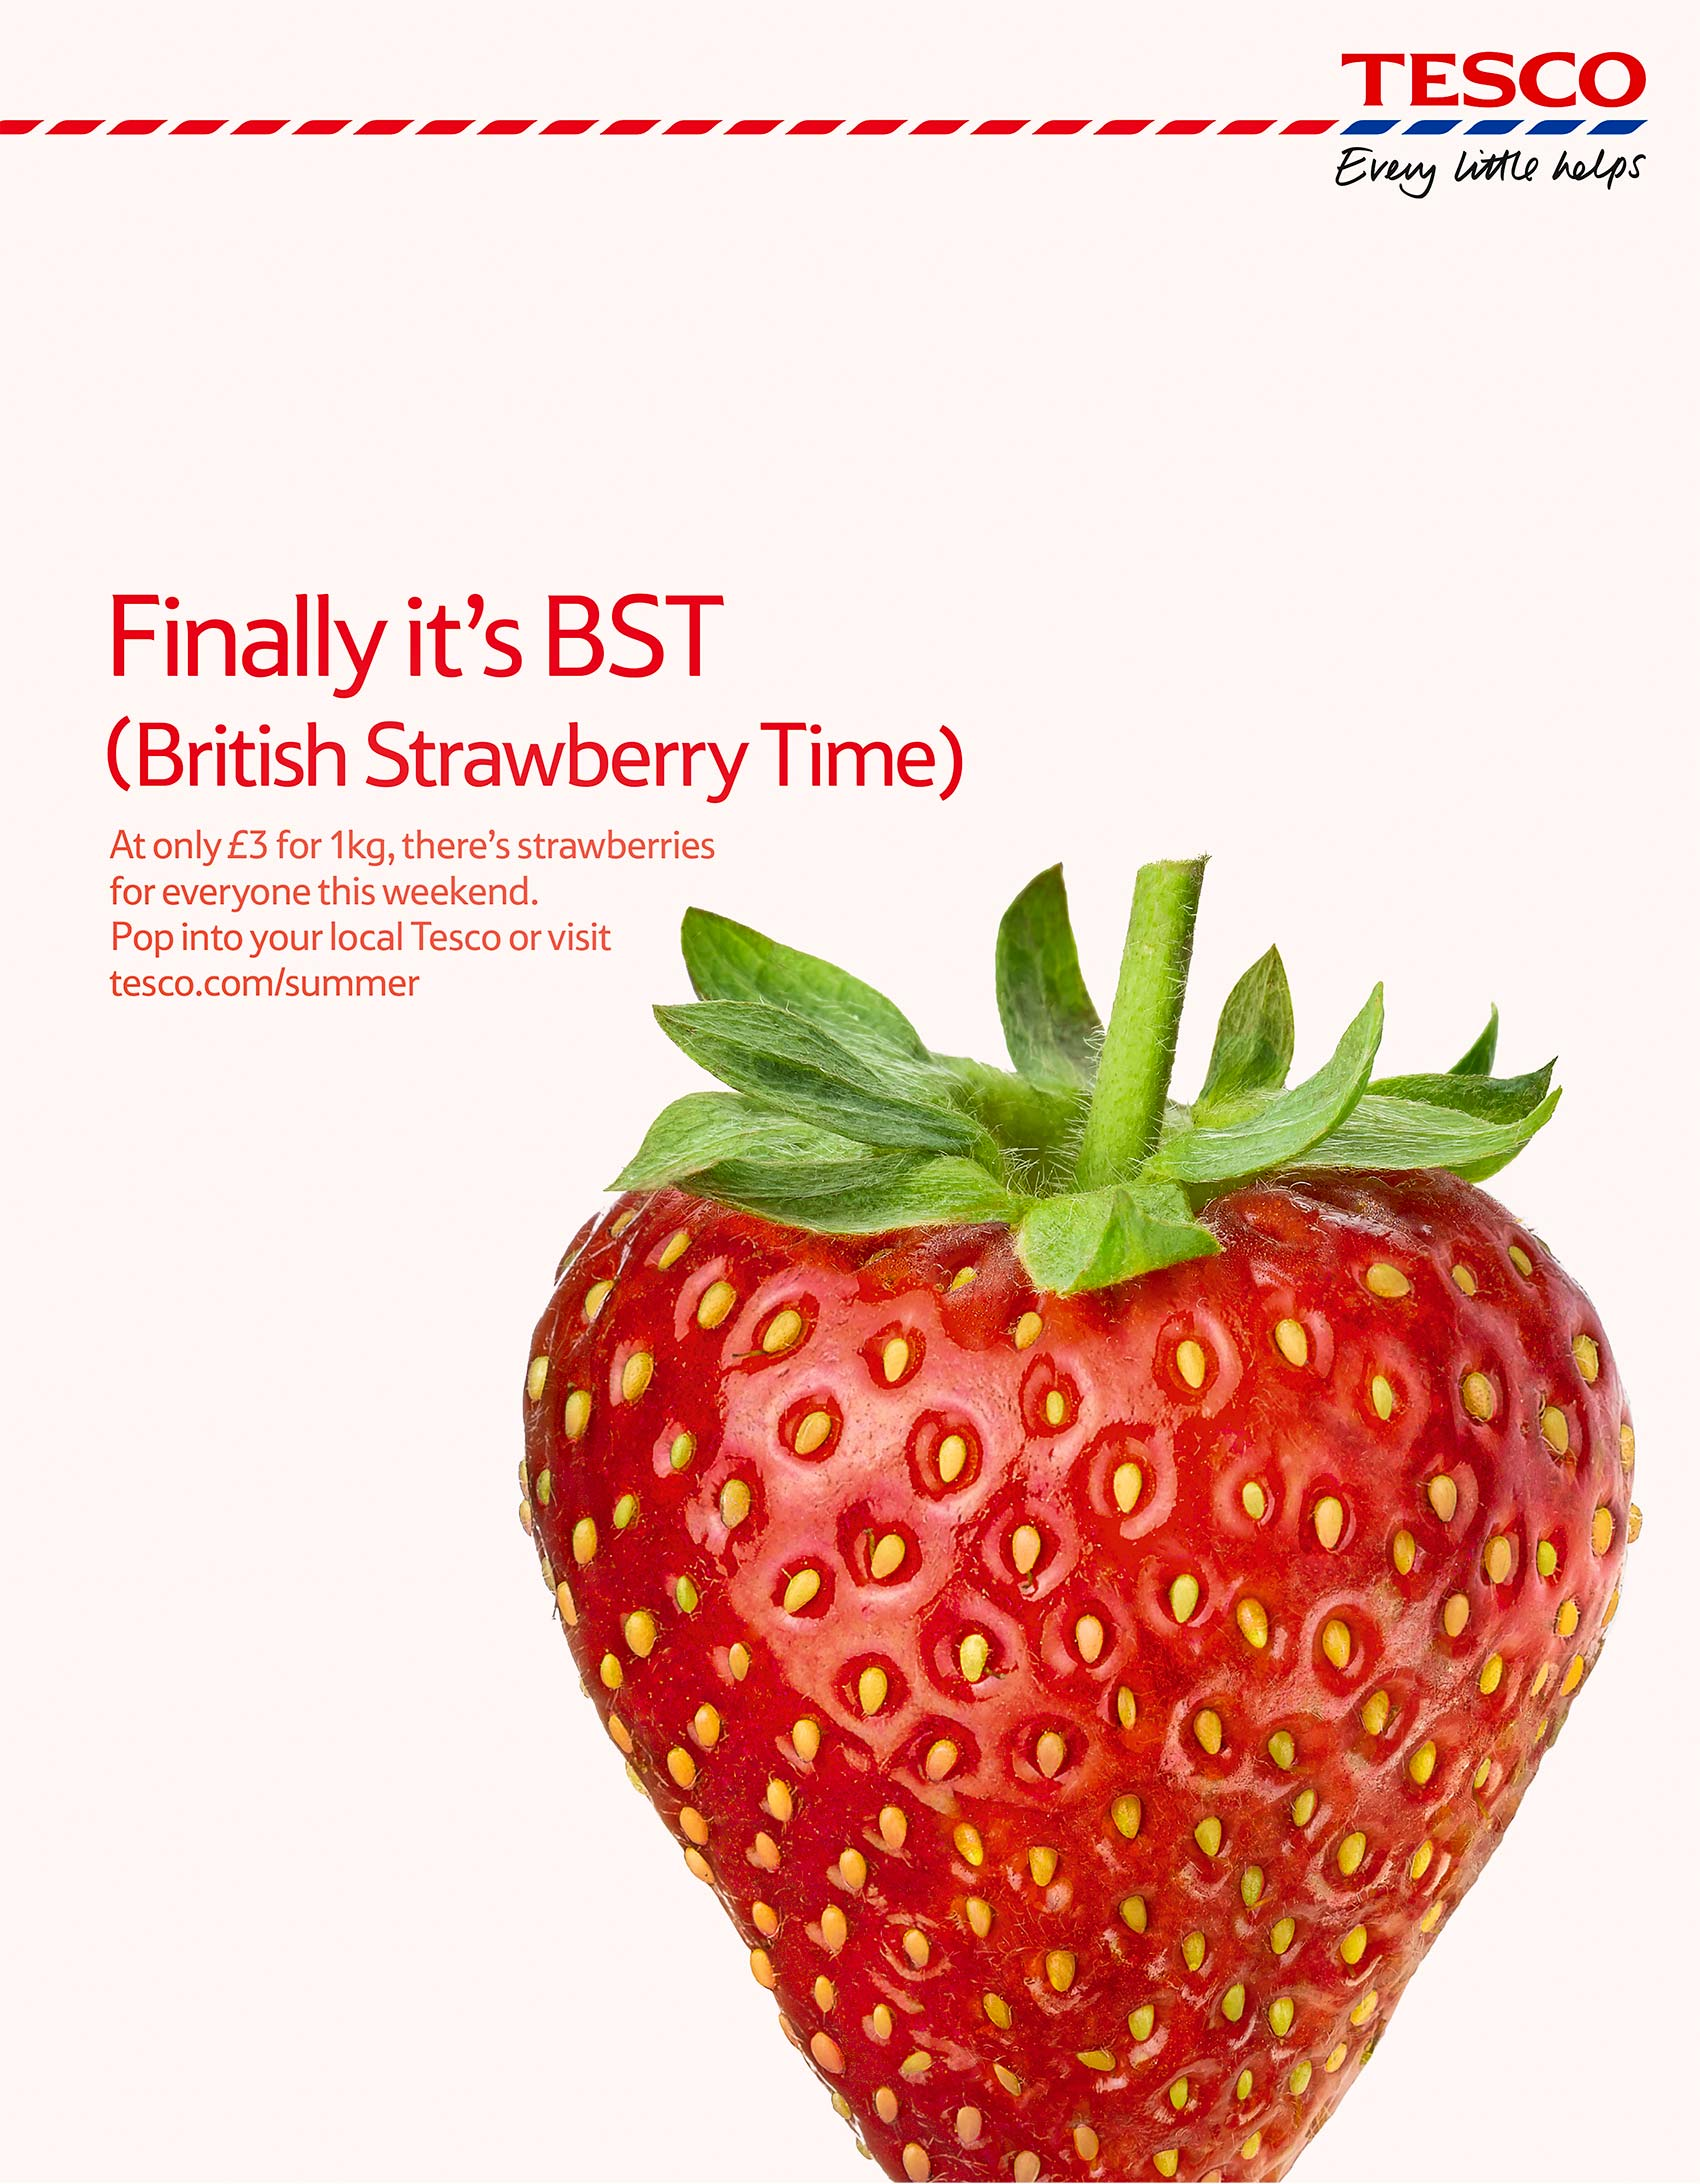 Tesco summer strawberry | Colin Campbell-Food Photographer